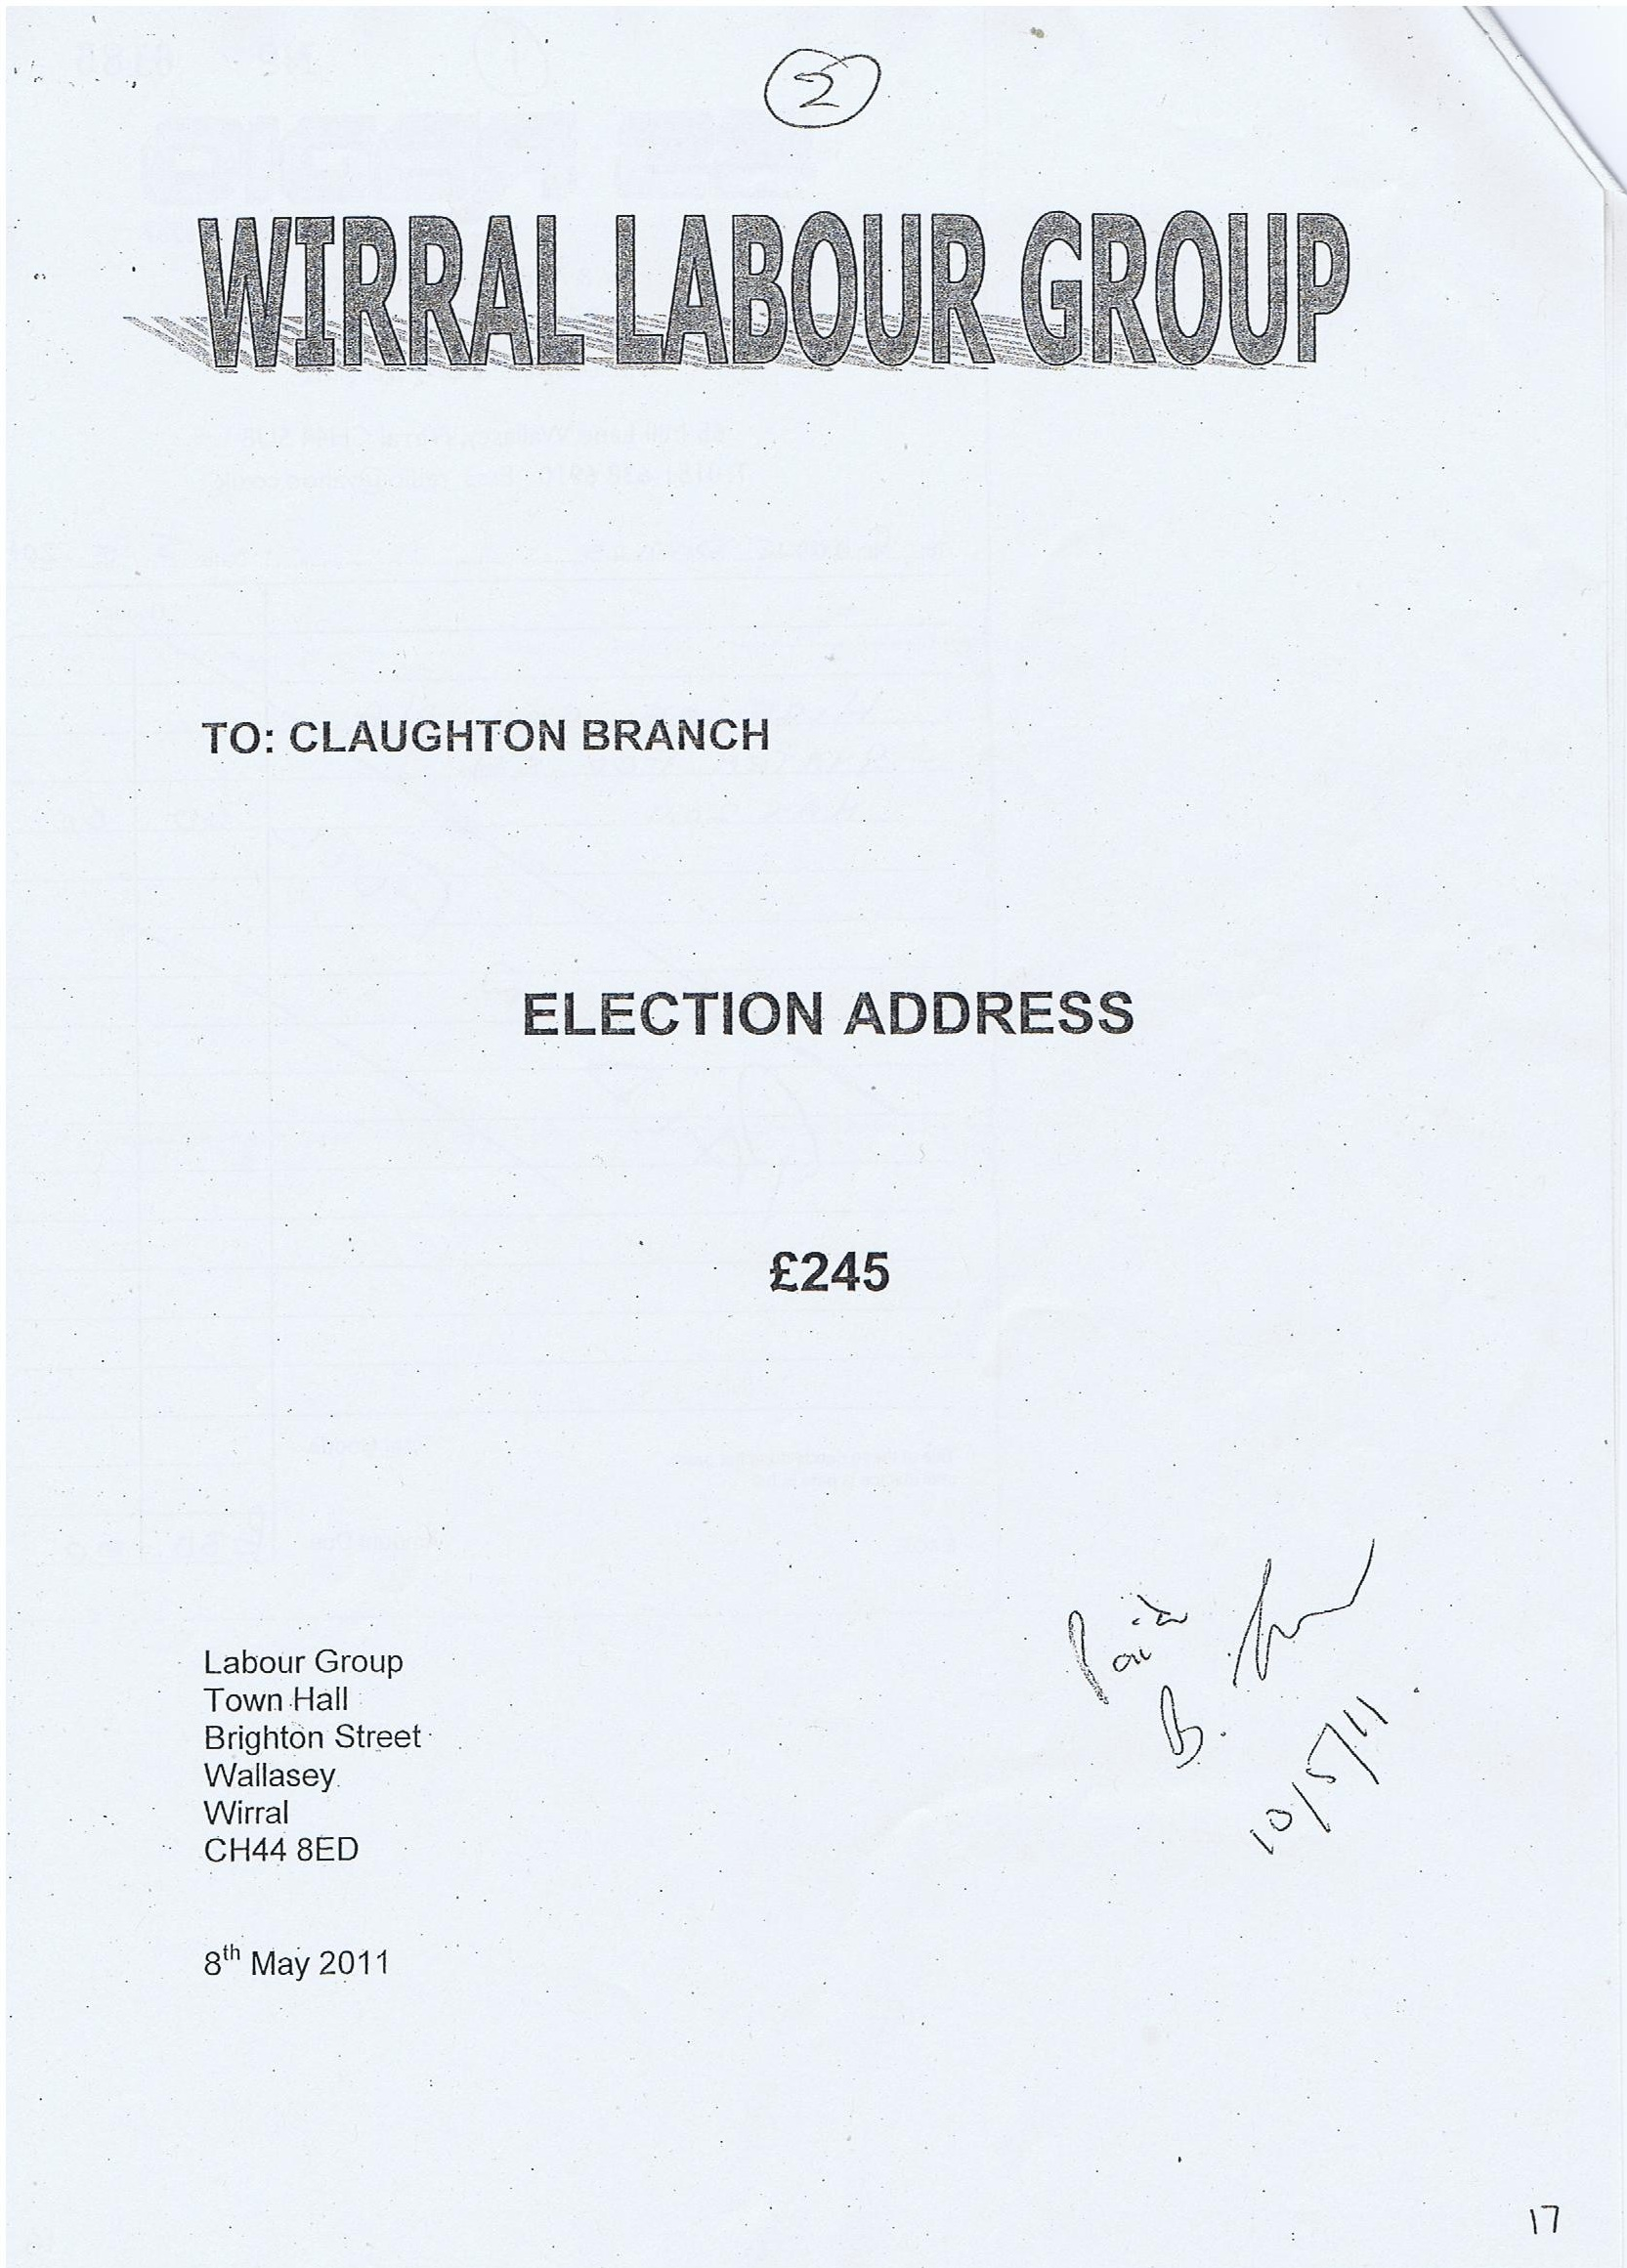 Election Expense Invoice Steve Foulkes Wirral Council election (Claughton ward) 2011 Labour Group Election Address £245